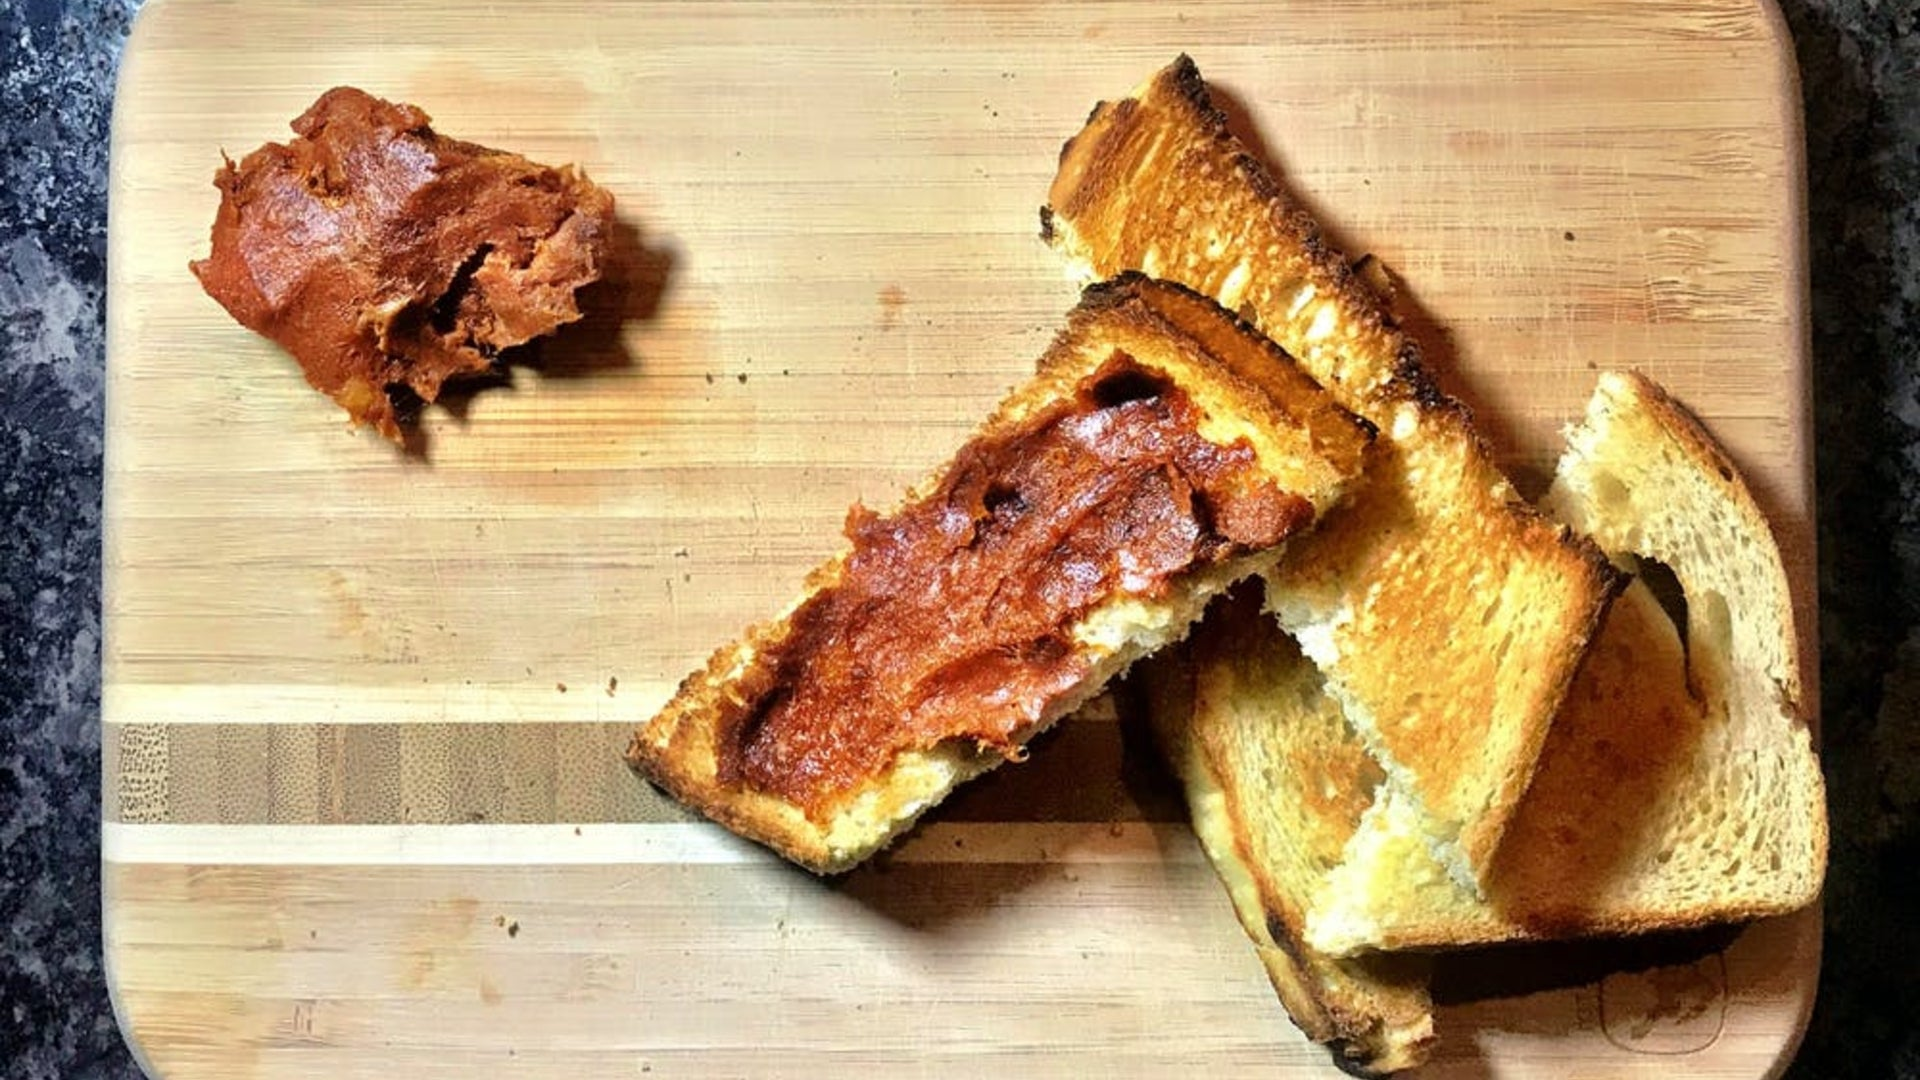 four pieces of crispy toasted bread on a cutting board with 'nduja spread on one piece.